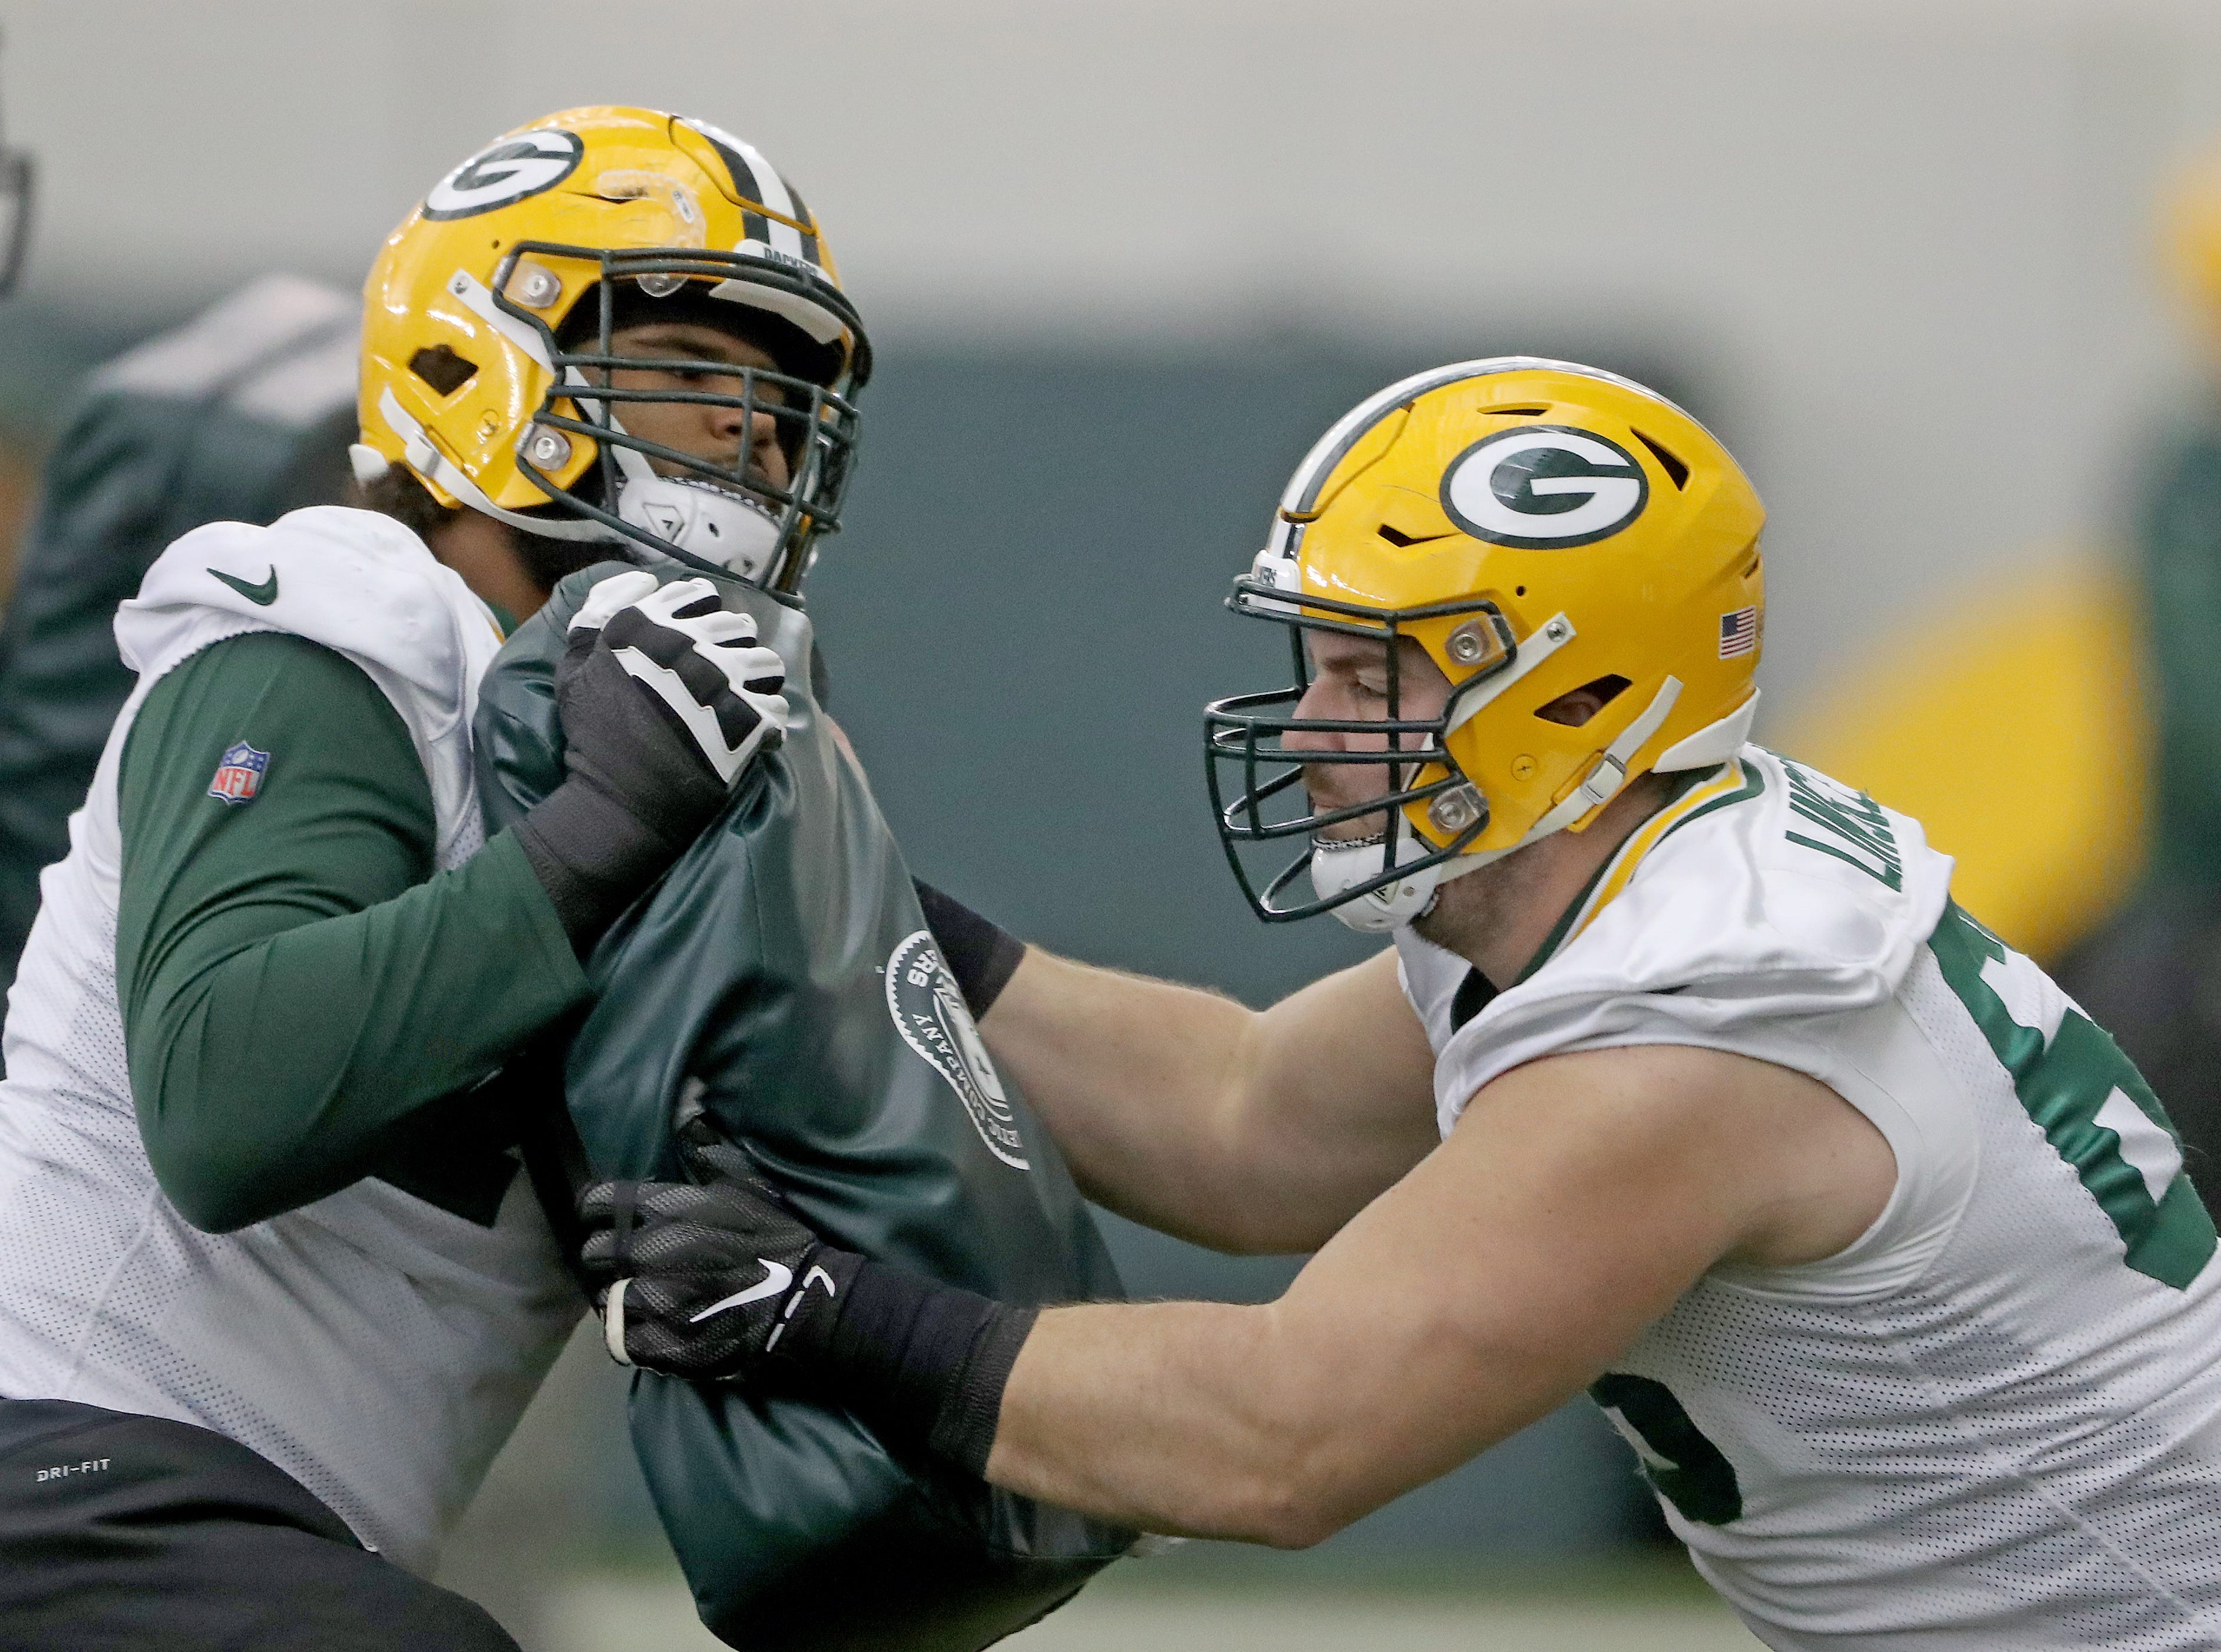 Green Bay Packers center Corey Linsley (63) drills during practice Wednesday, December 12, 2018 in the Don Hutson Center in Ashwaubenon, Wis.